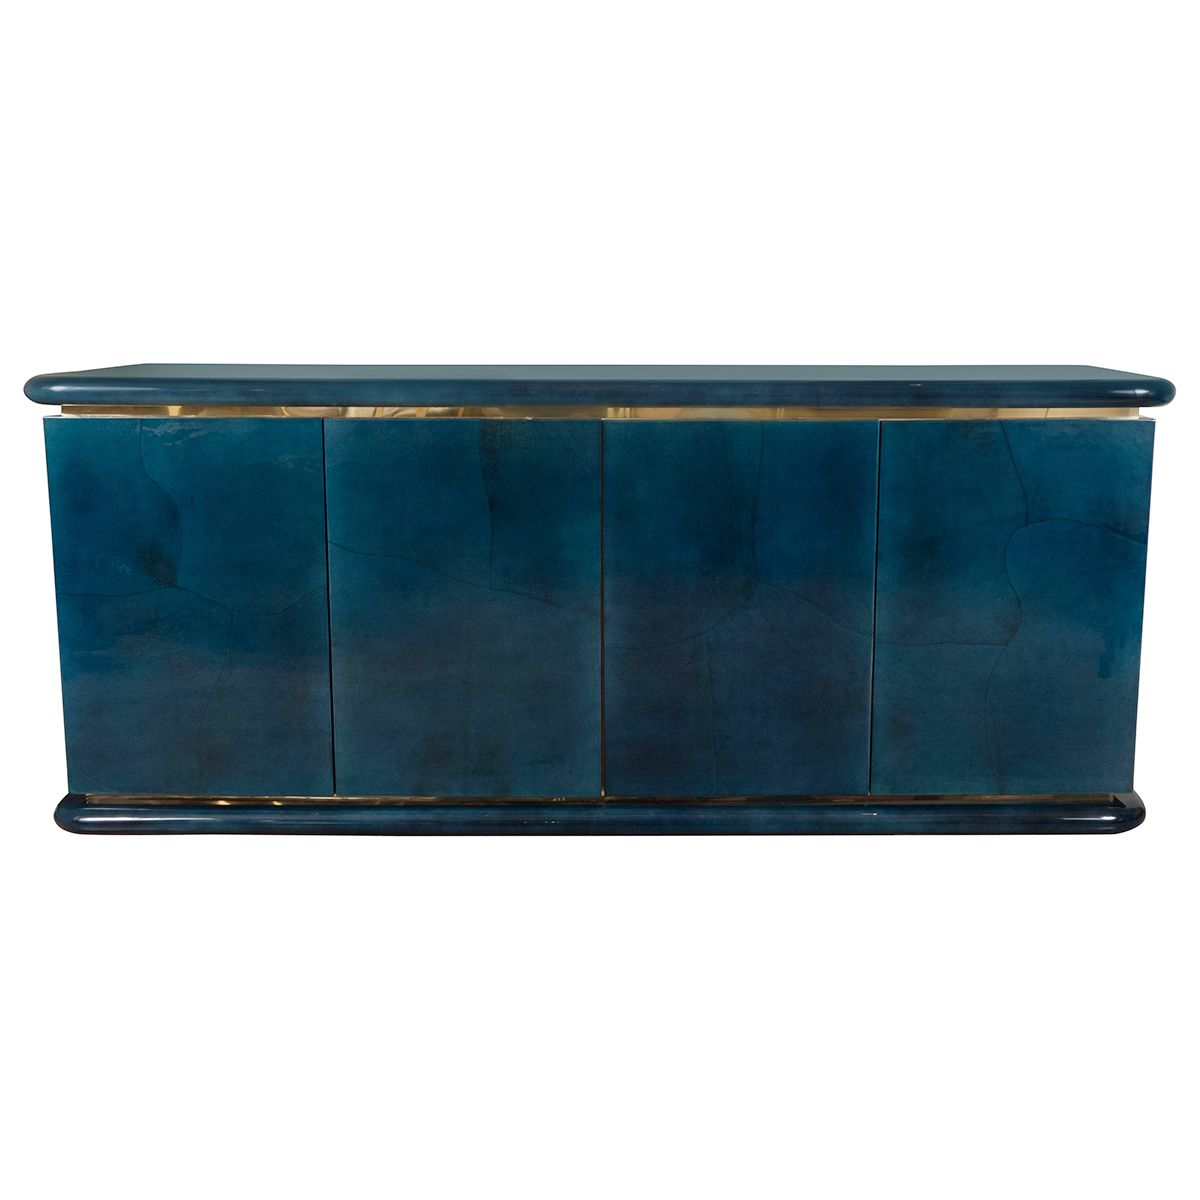 "Blue lacquered goatskin sideboard | Sideboards | John Salibello Origin: United States Circa: 1960 Dimensions: 72"" wide x 20"" deep x 30.5"" high"